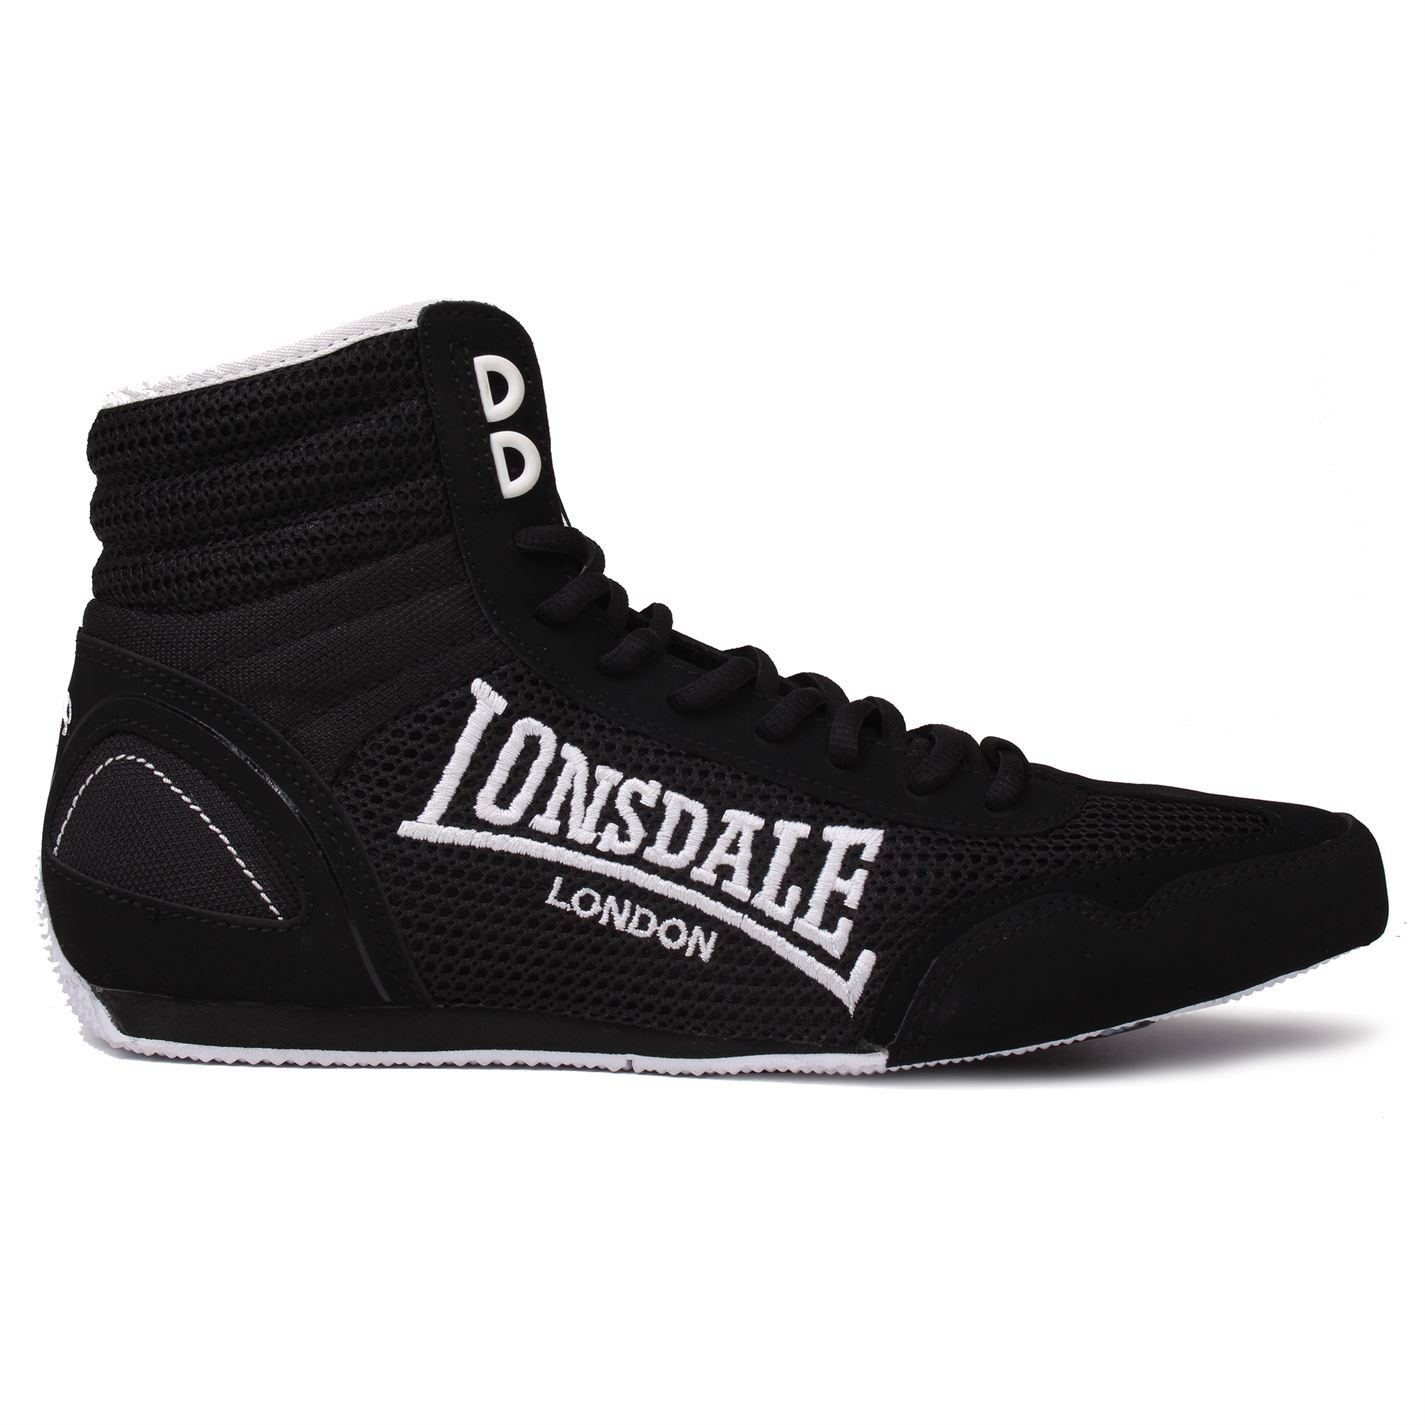 Lonsdale Mens Contender Boxing Boots Mid Cut Full Lace up Lightweight Shoes Black/White UK 8.5 (42.5)